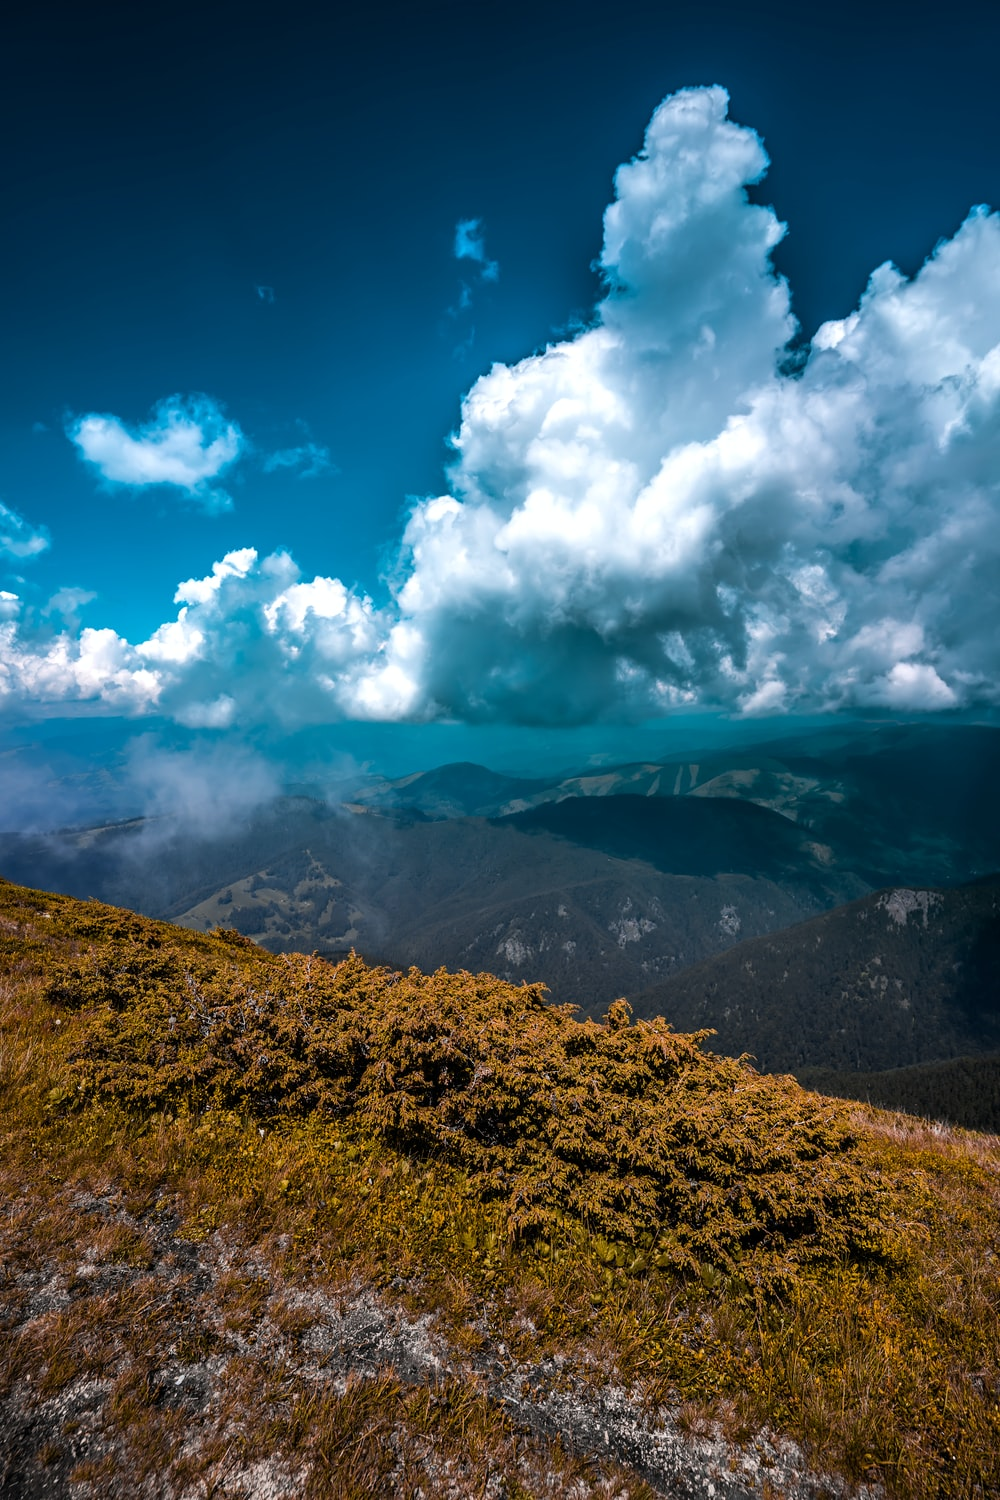 brown mountain under white clouds and blue sky during daytime